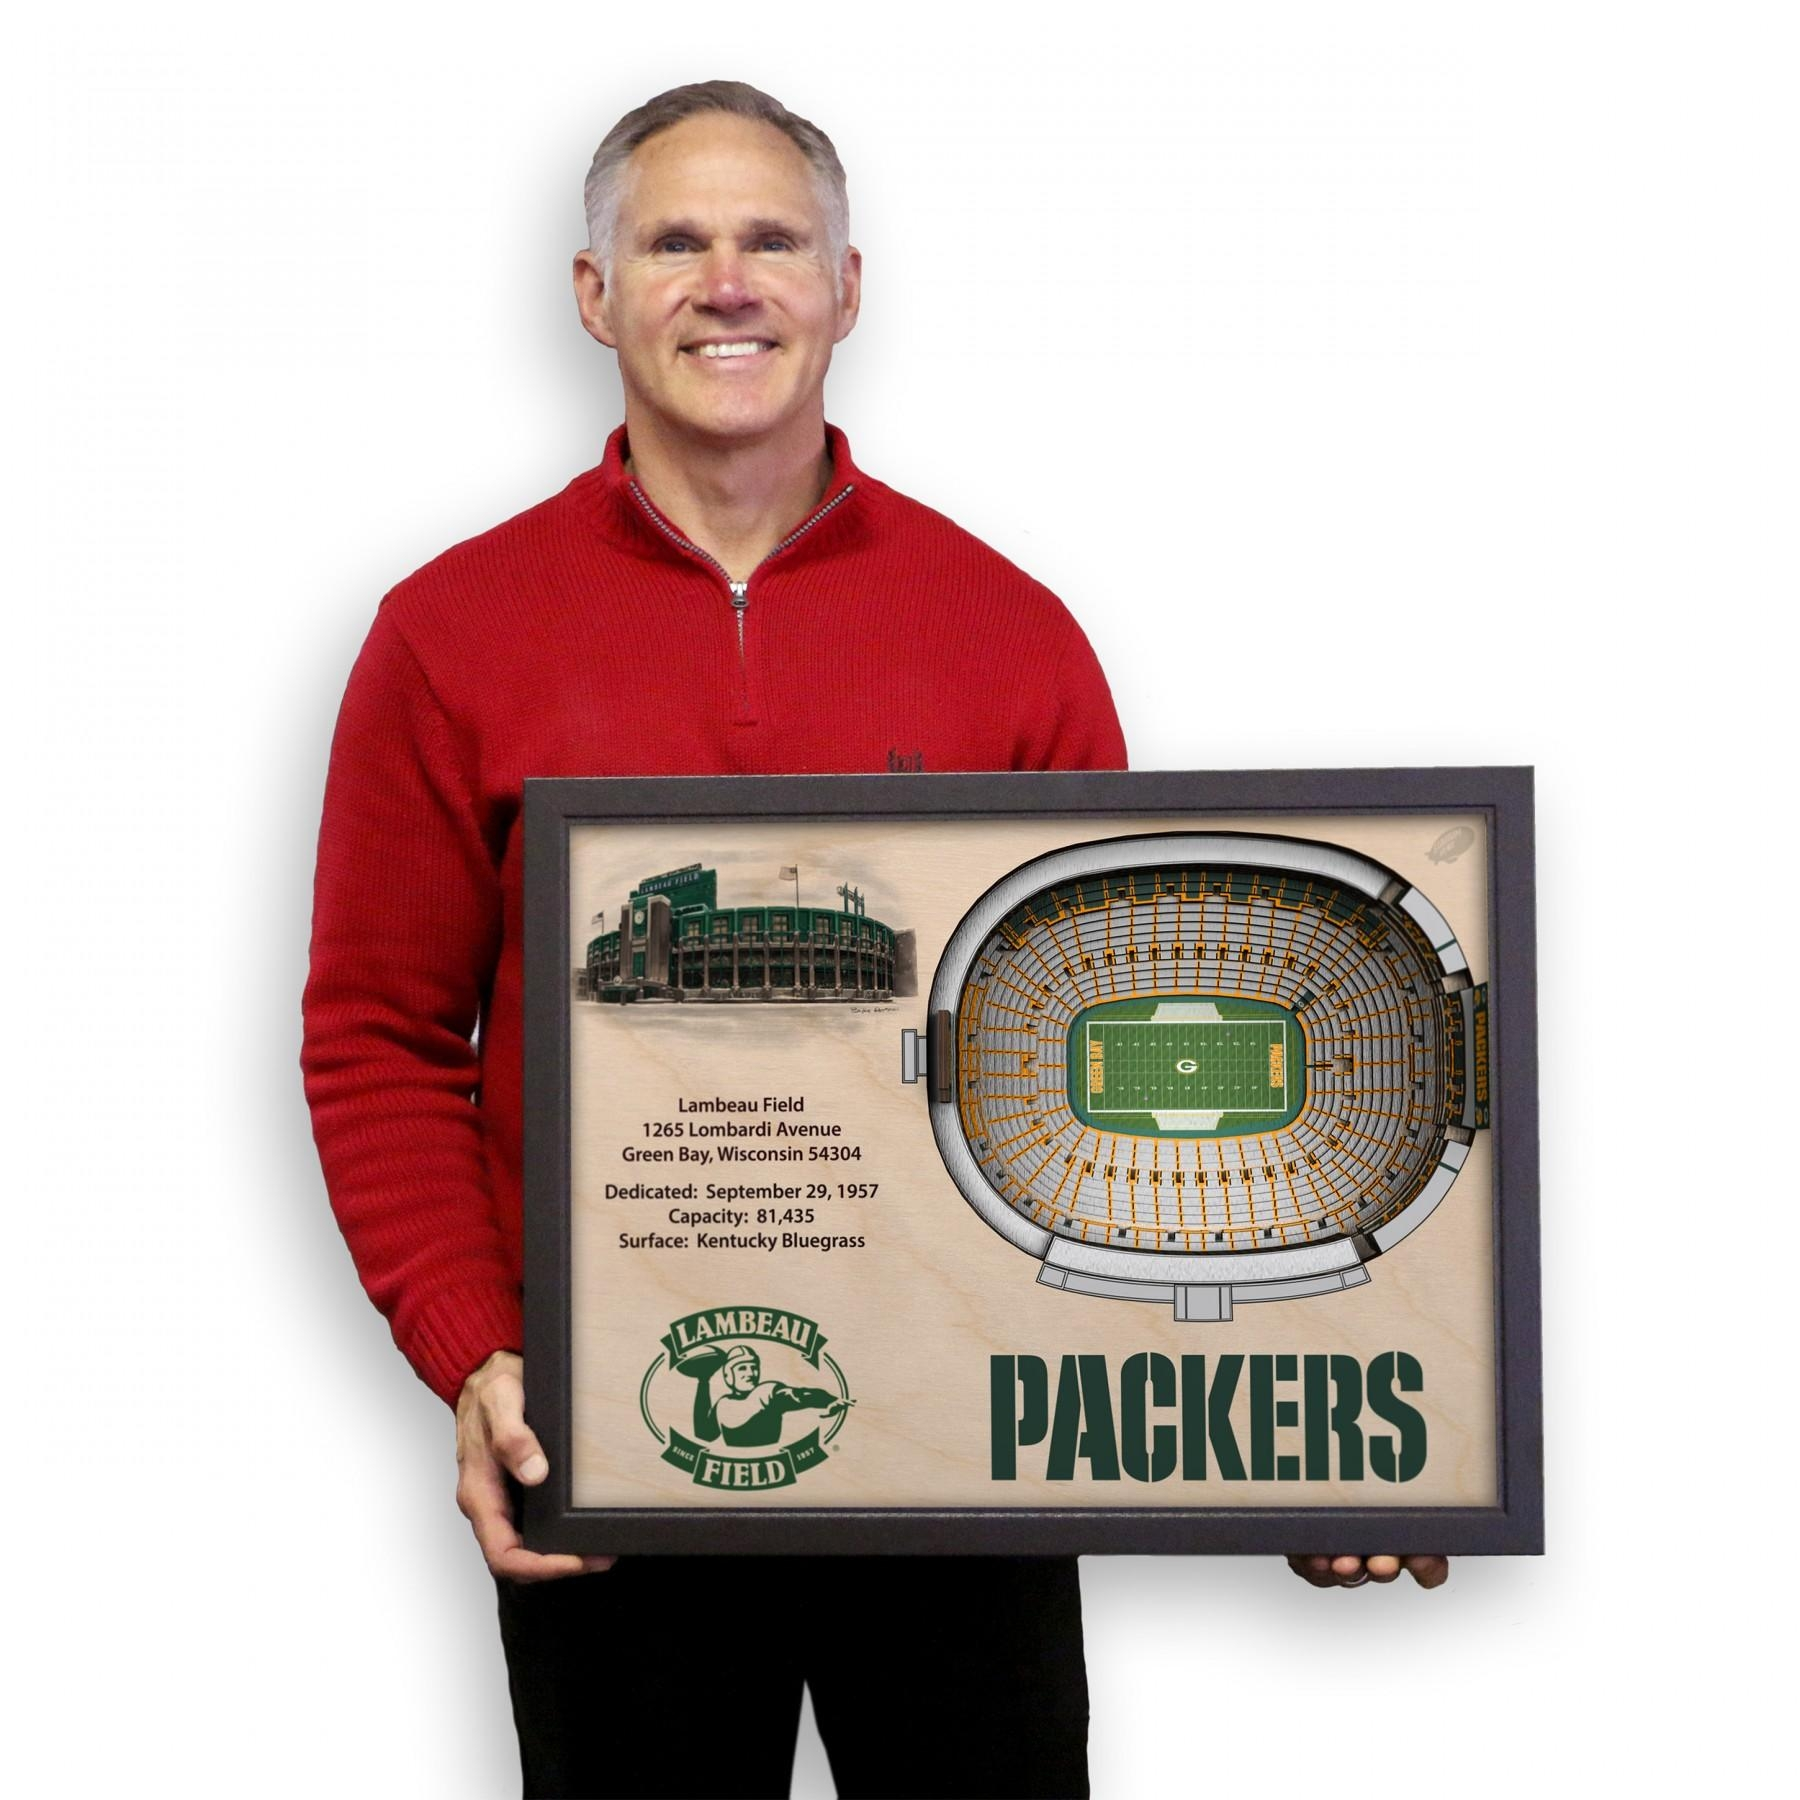 Green Bay Packers Stadiumview Wall Art – Lambeau Field 3 D For Green Bay Packers Wall Art (Image 9 of 20)